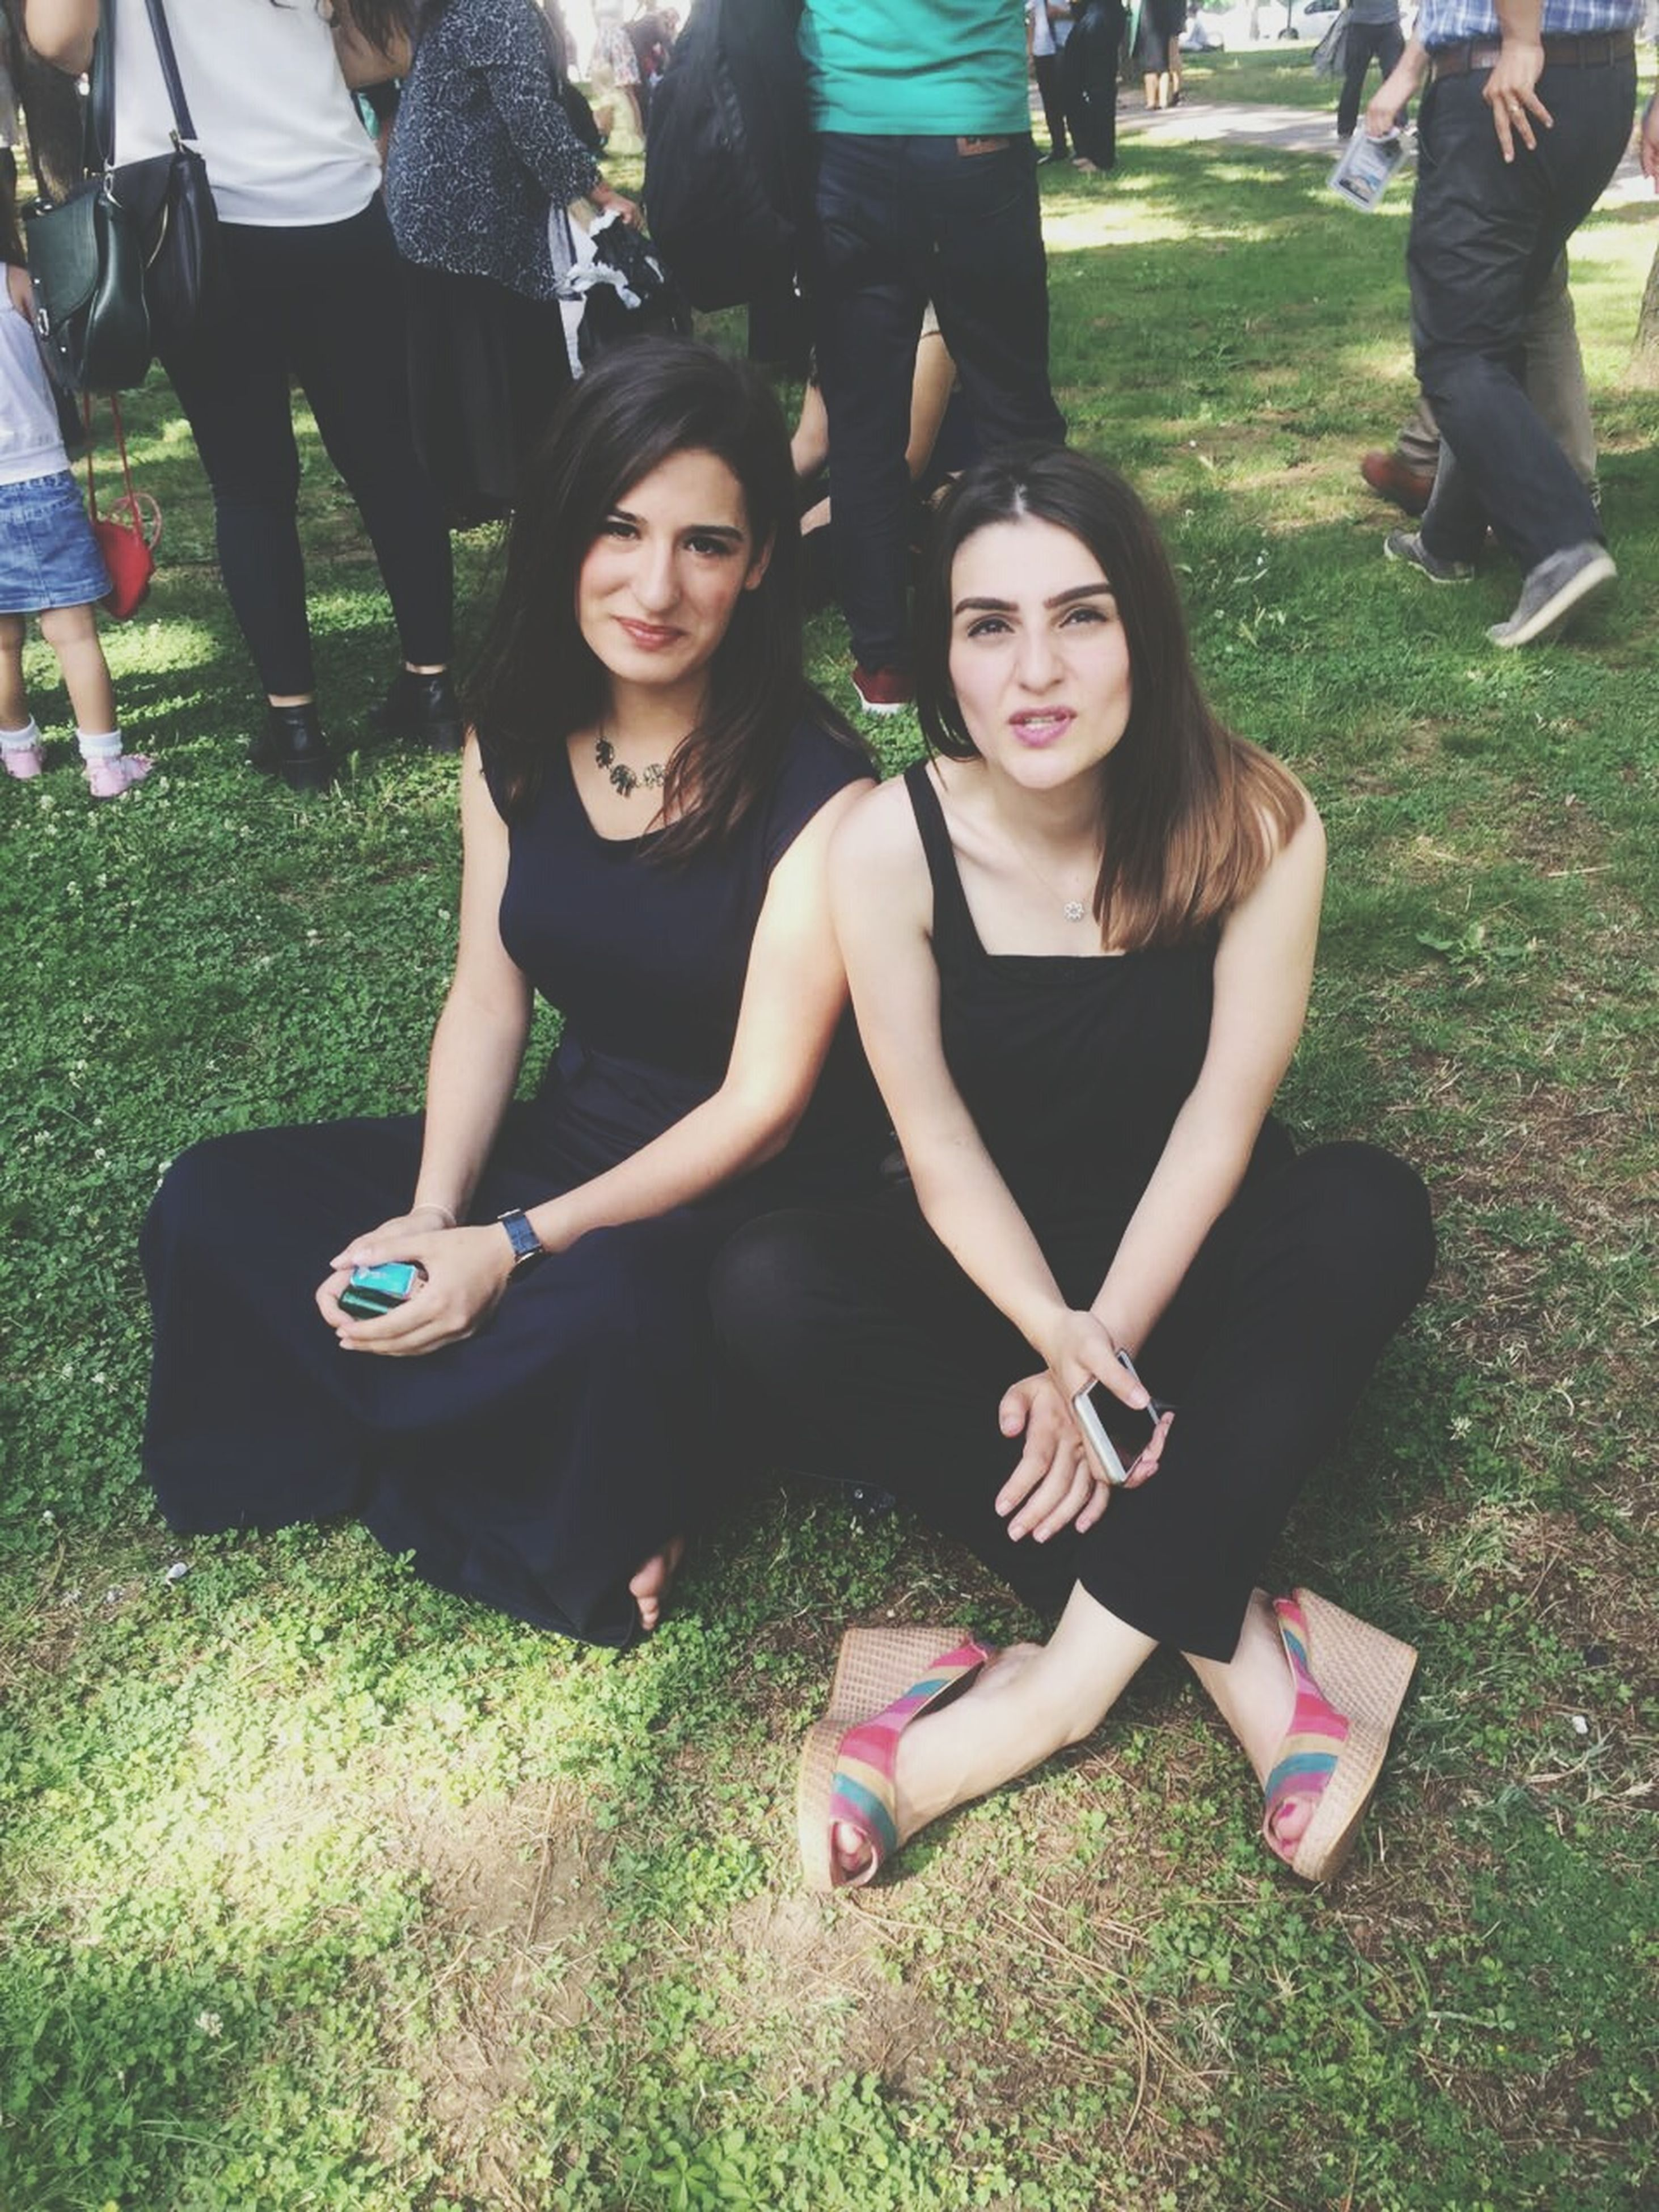 lifestyles, leisure activity, grass, casual clothing, sitting, togetherness, person, park - man made space, young adult, friendship, young women, enjoyment, smiling, fun, front view, happiness